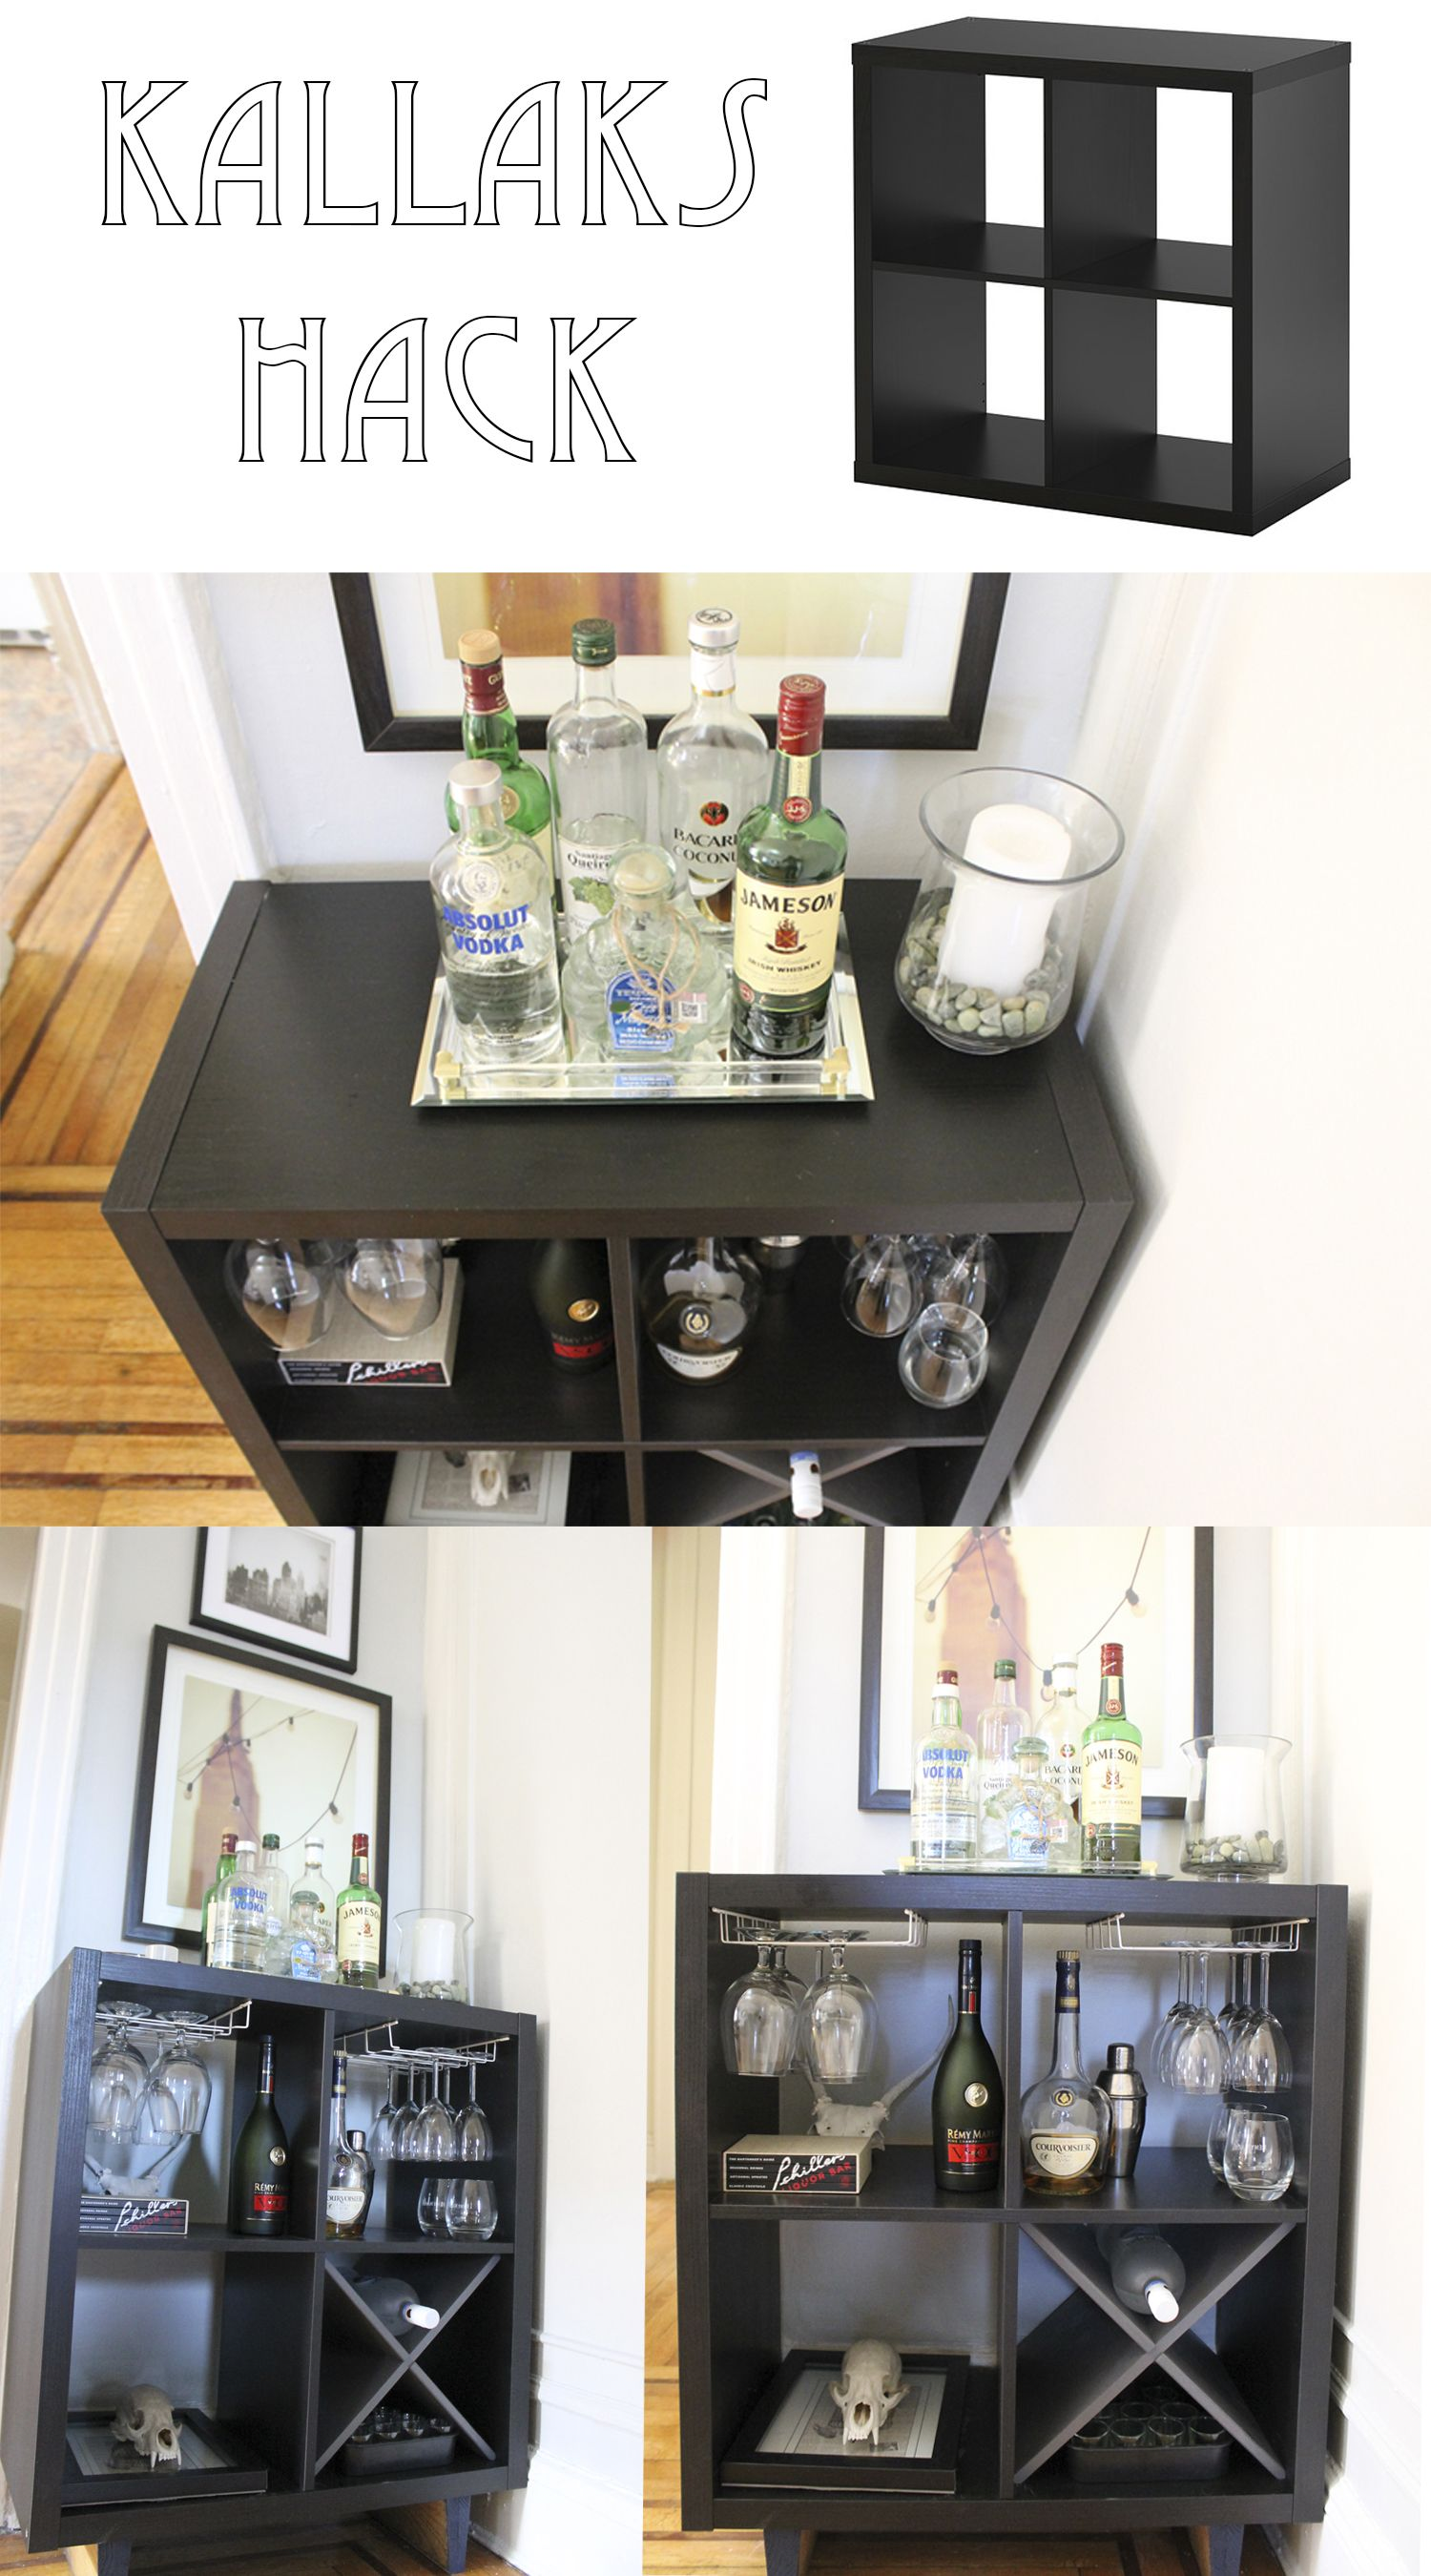 Wohnzimmer Bar Ikea Ikea Kallax Hack To A Bar Made By Keeparker Daily Bee Ikea